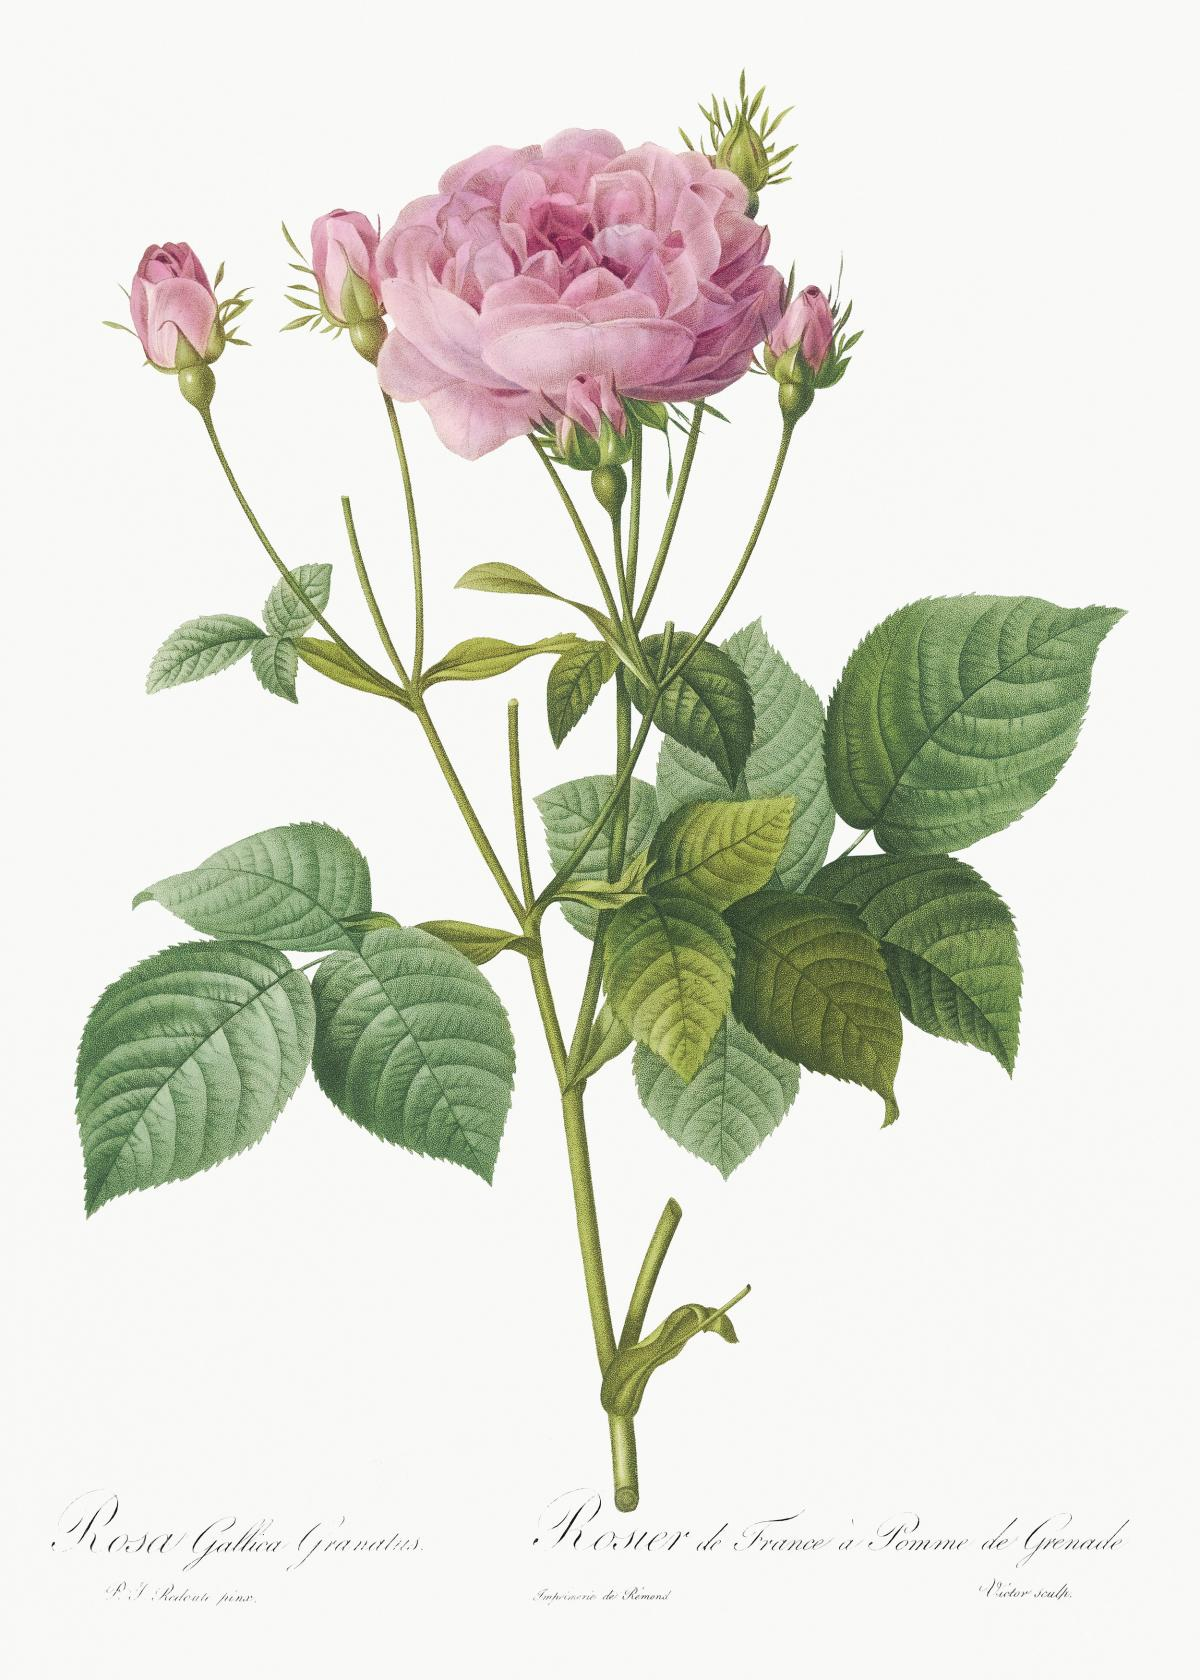 Rosa gallica granules, also known as Rosebush of France with Pomegranate from Les Roses (1817–1824) by Pierre-Joseph Redouté. Original from the Library of Congress.